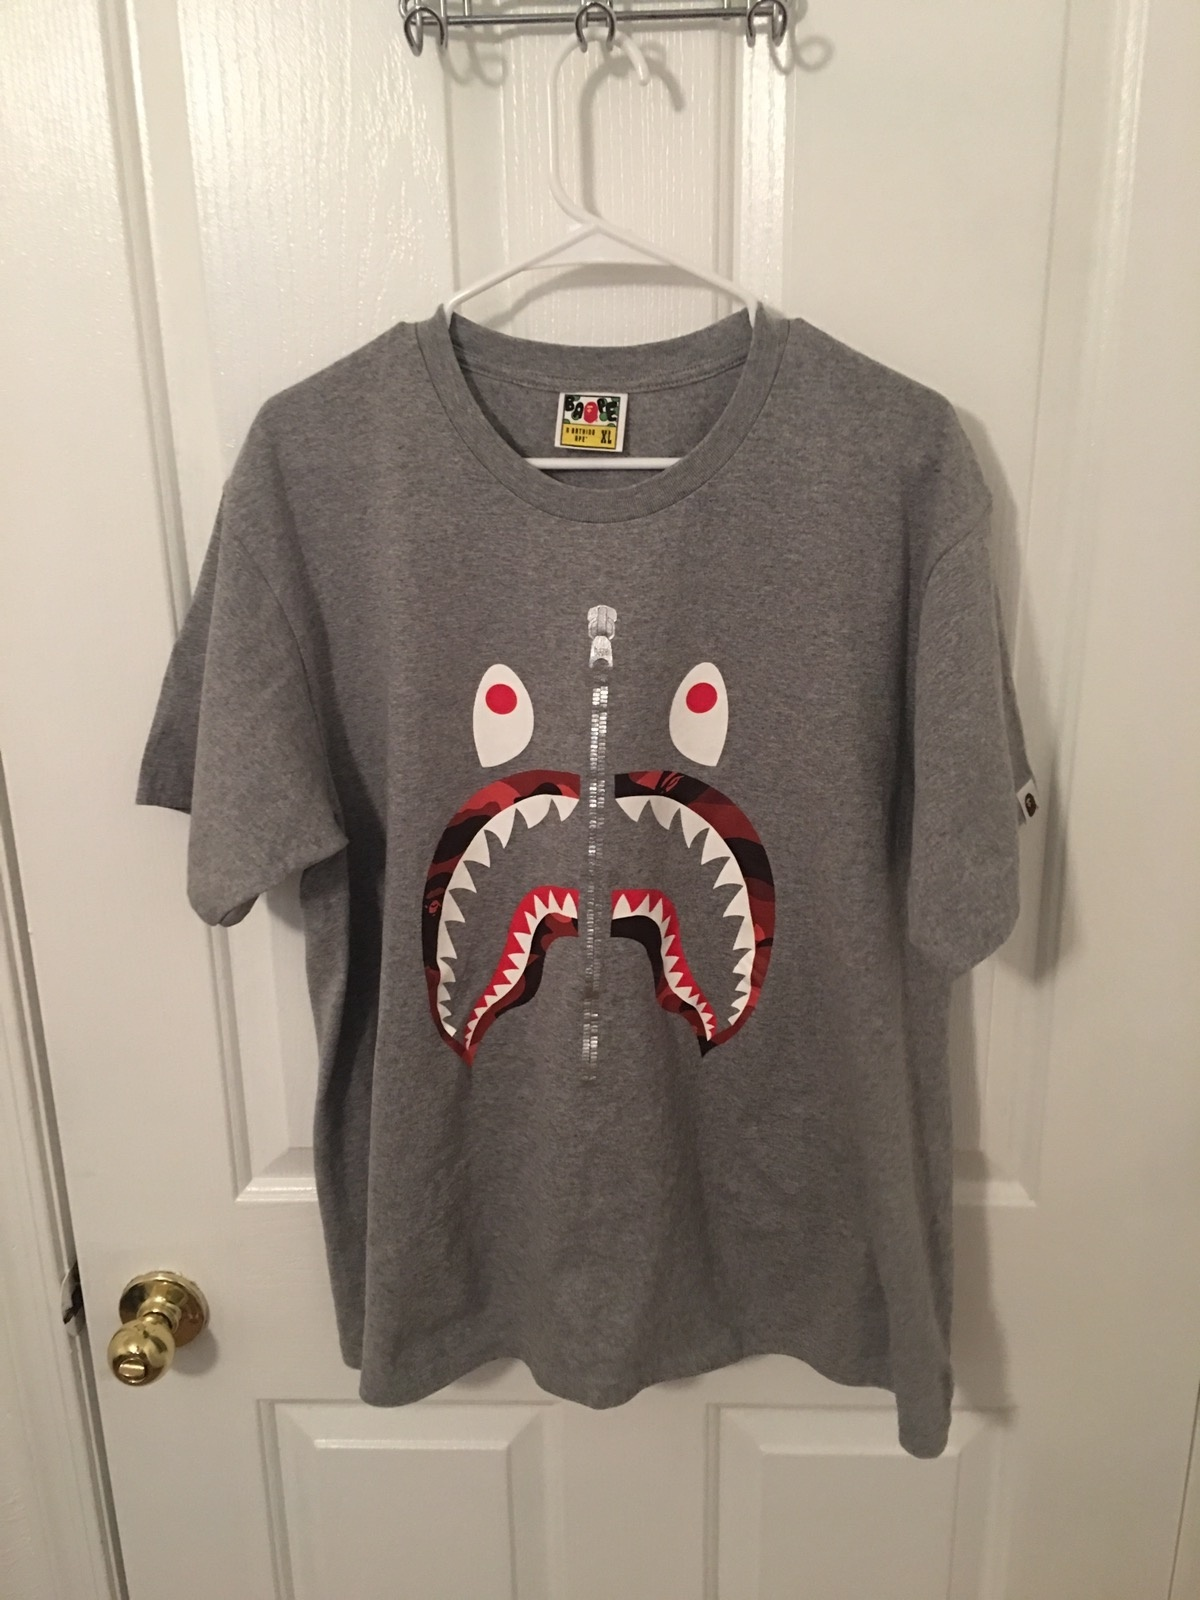 Bape Bape T Shirt Size L Short Sleeve T Shirts For Sale